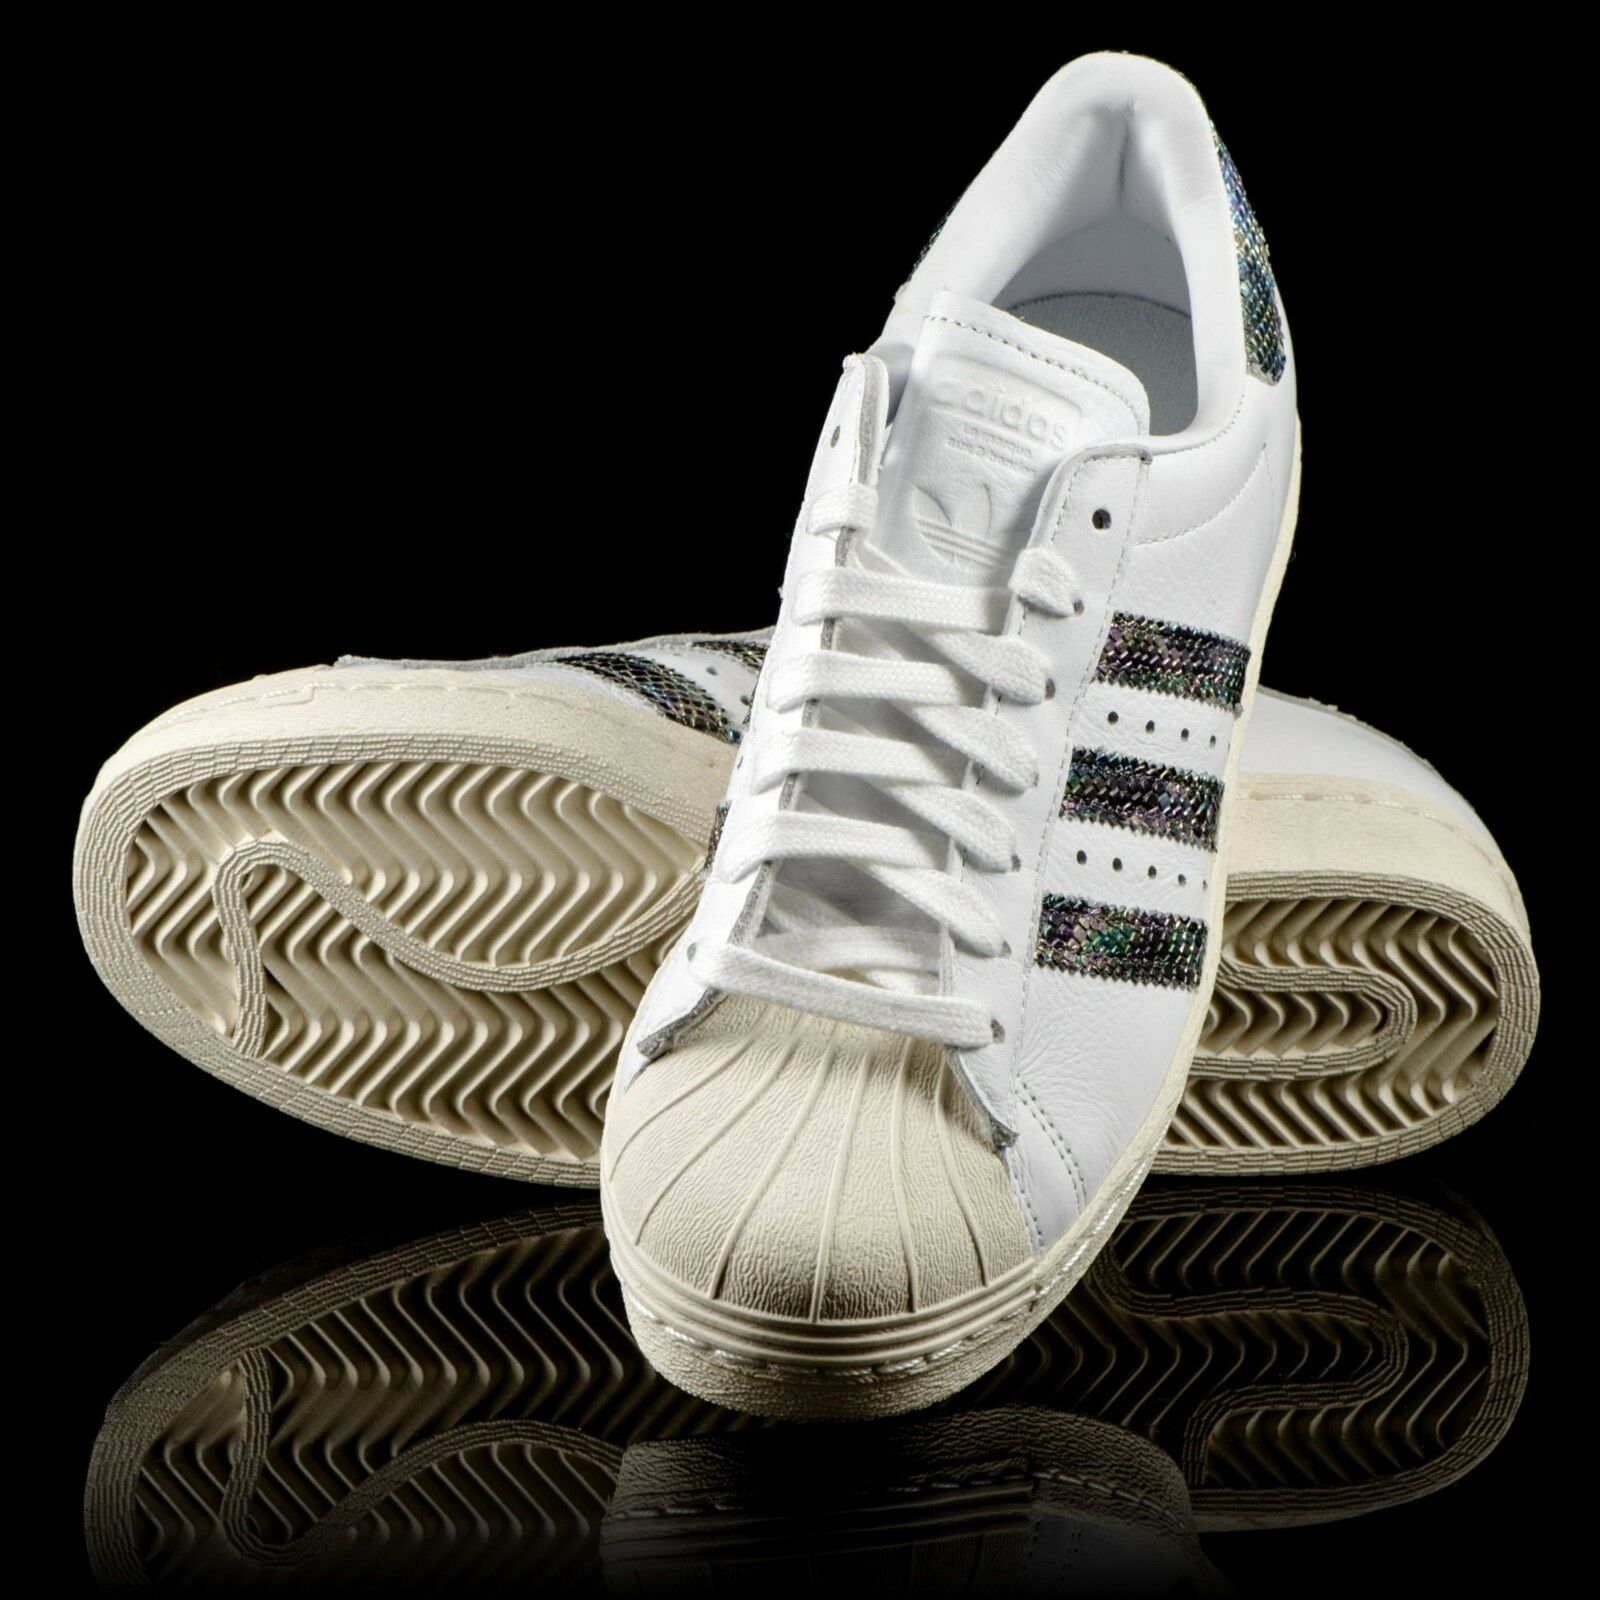 New ADIDAS Originals SUPERSTAR 80's shoes men's 10 white & snakeprint sneakers